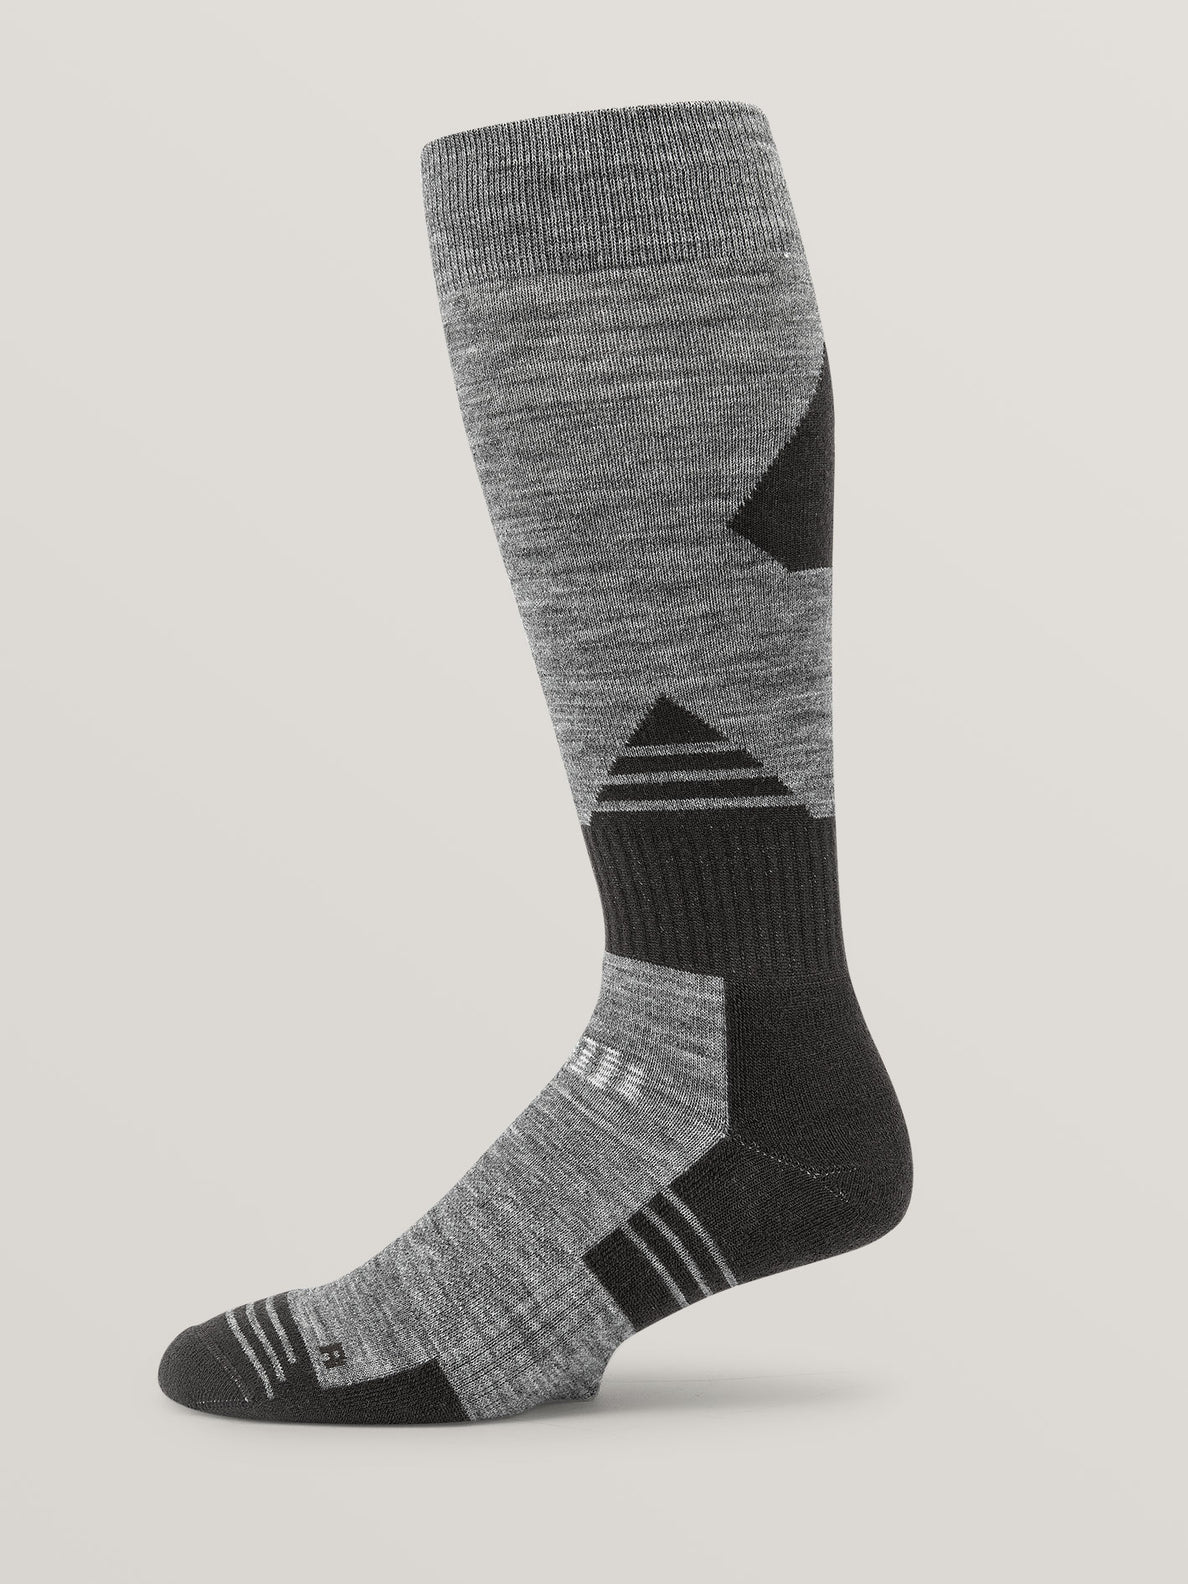 Kootney Sock Charcoal Heather (J6352000_CHH) [2]